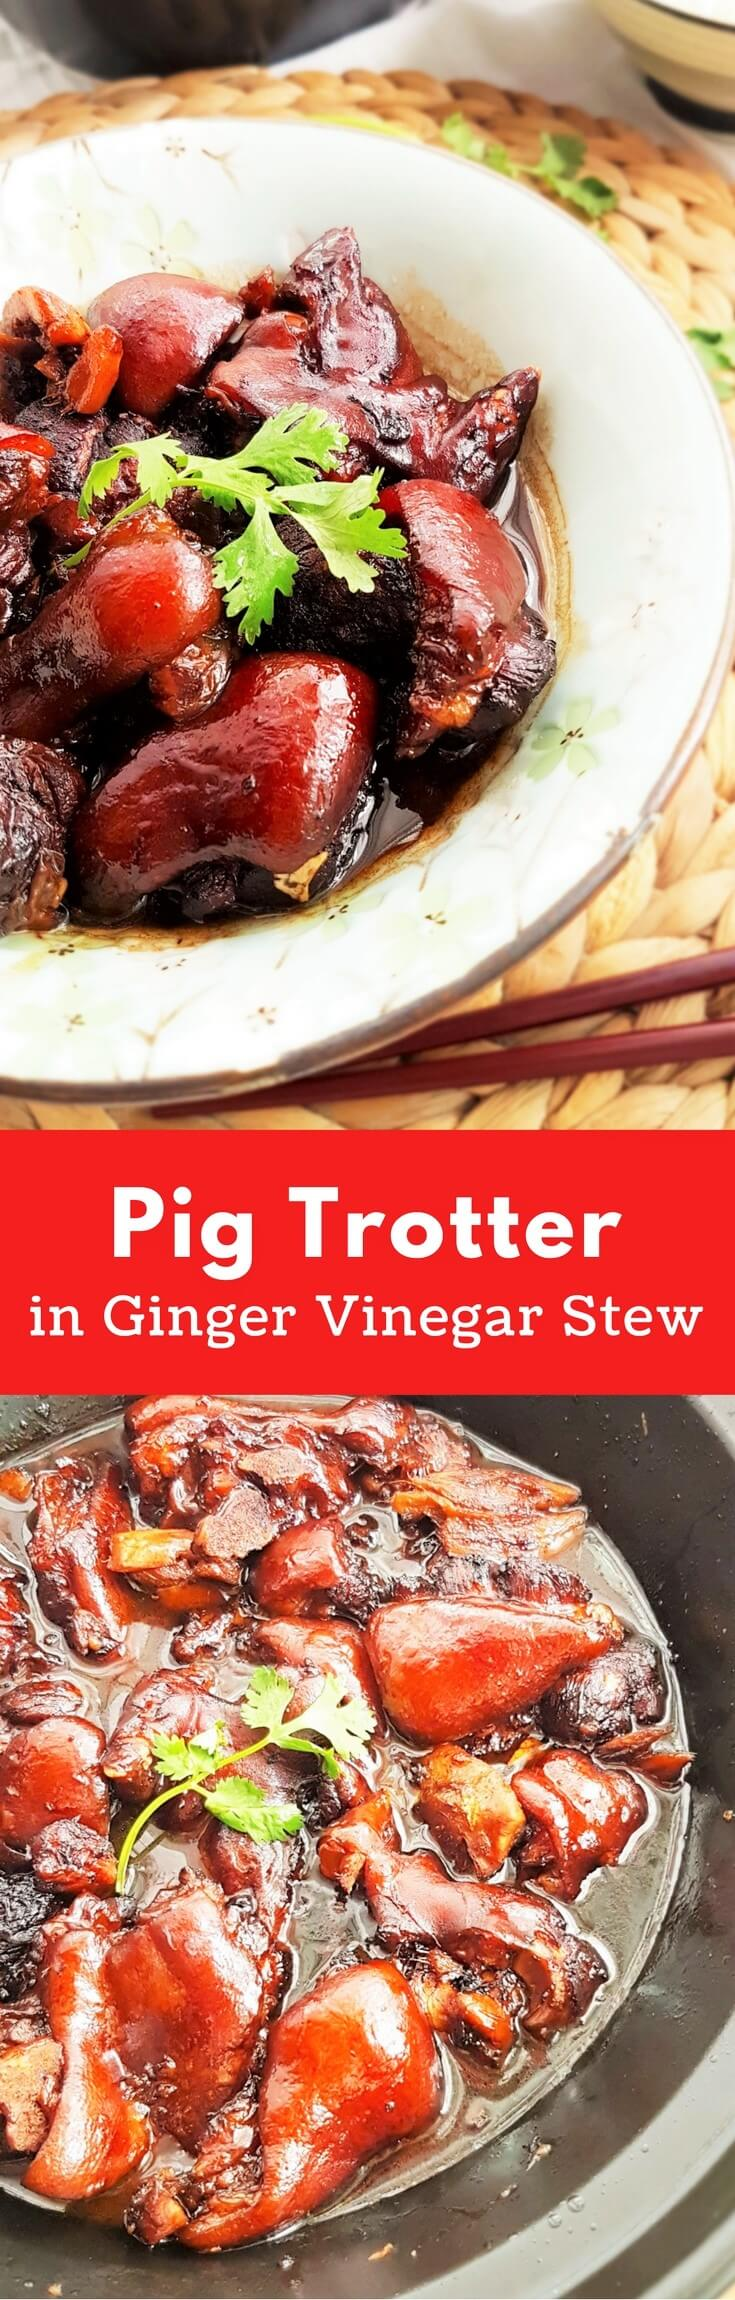 pig-trotter-in-ginger-vinegar-stew